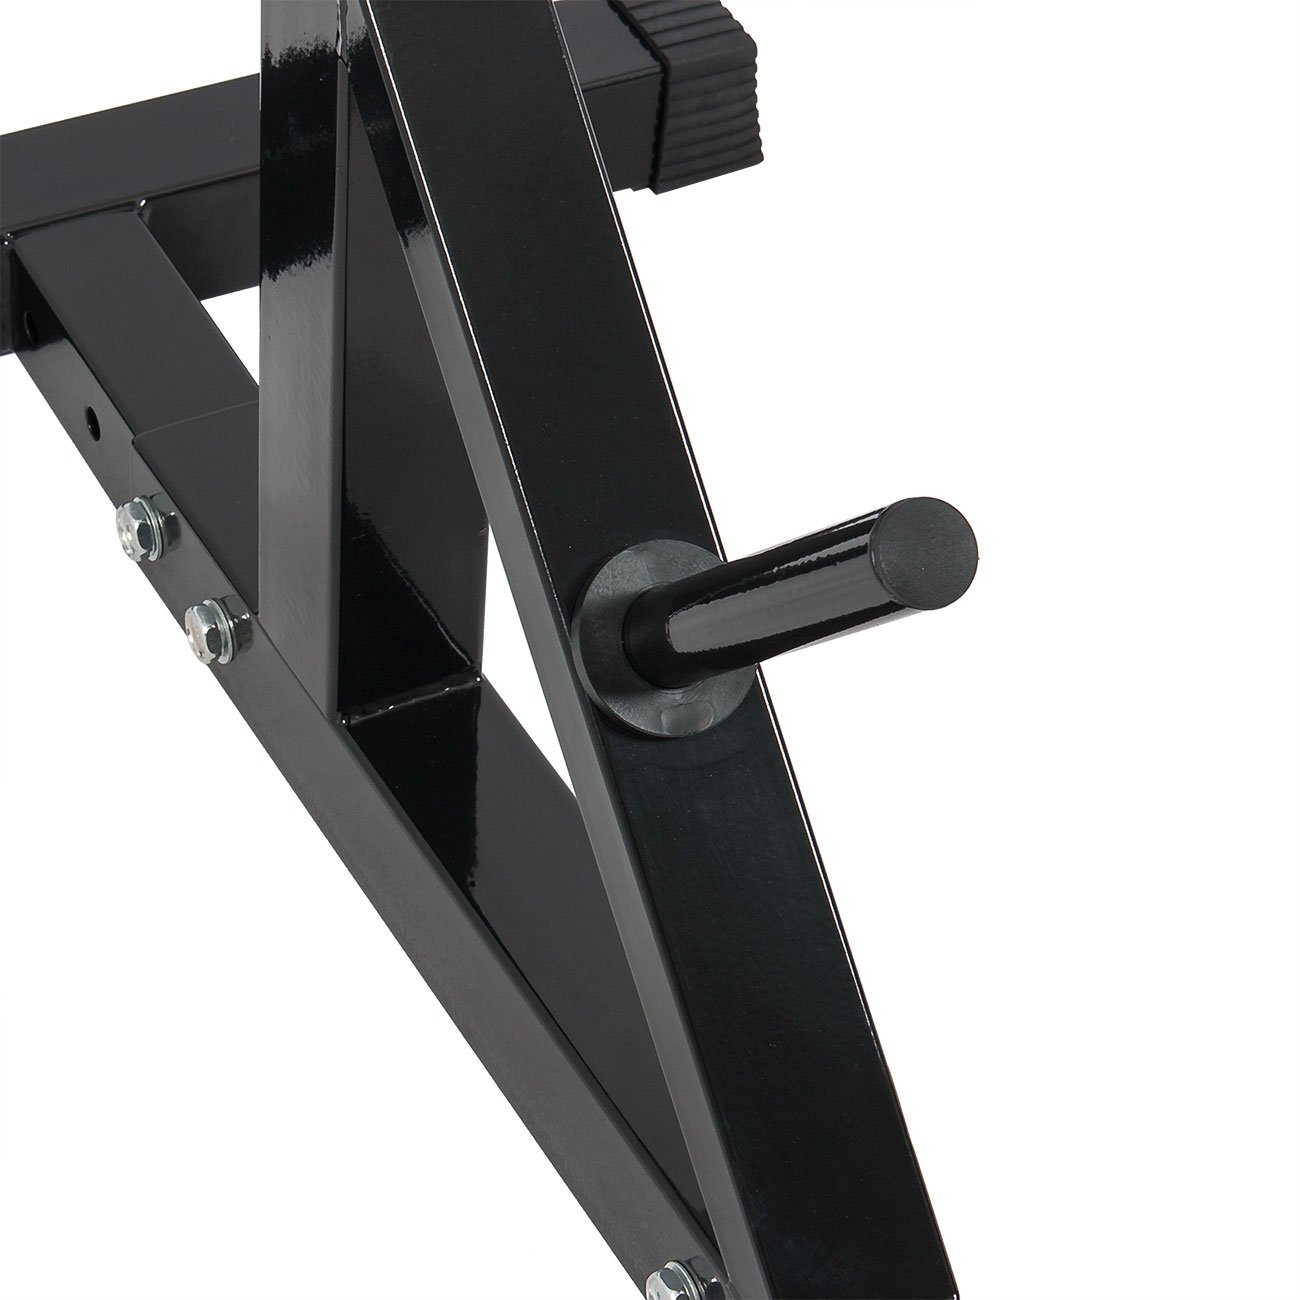 Akonza Pair of Adjustable Standard Solid Steel Power Squat Stands Barbell Free Press Bench -Black by Akonza (Image #4)